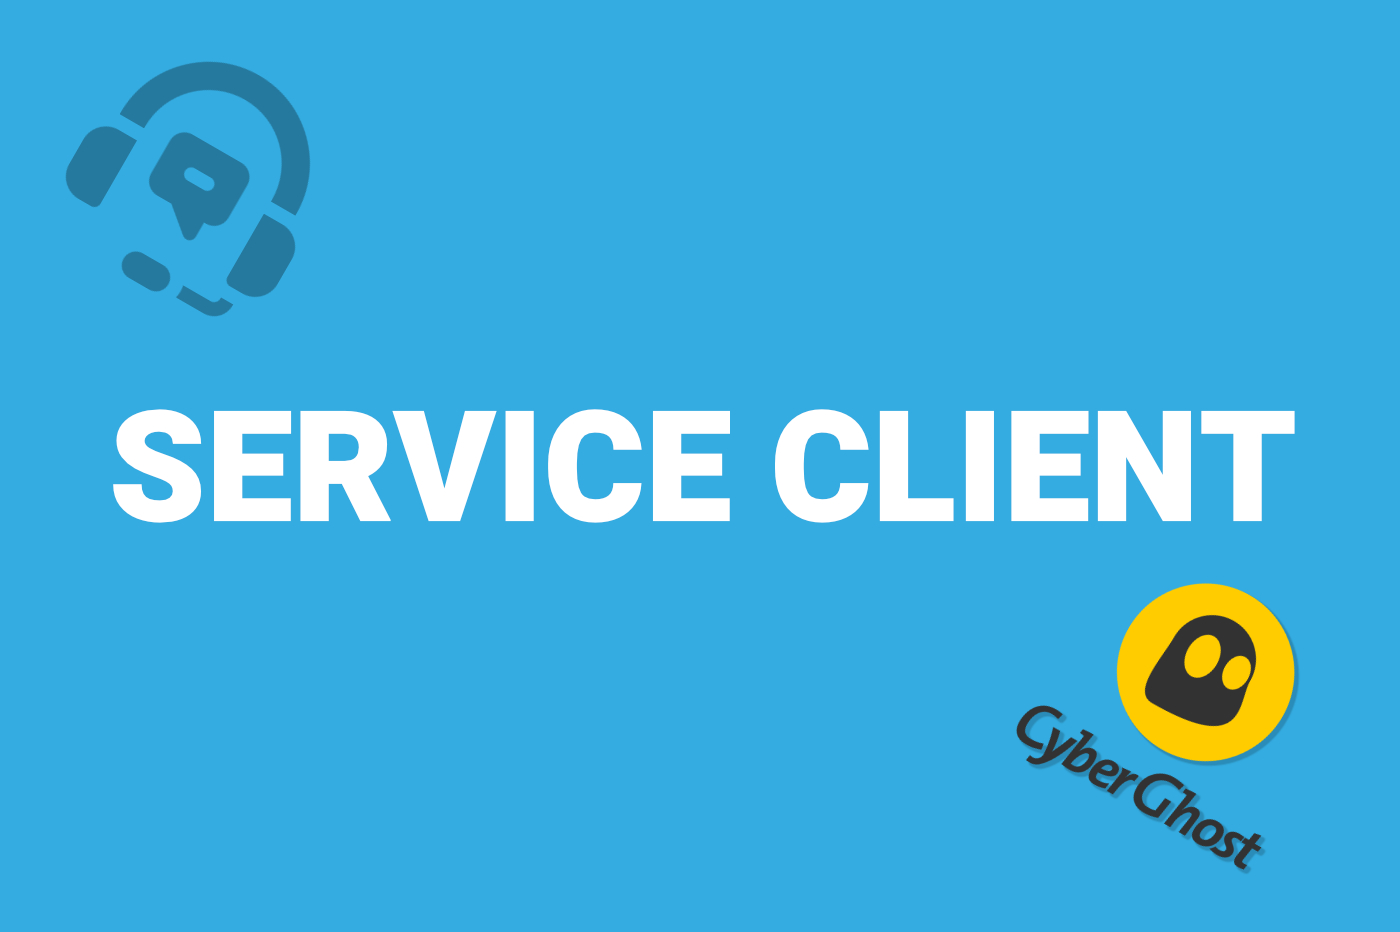 Service Client CyberGhost